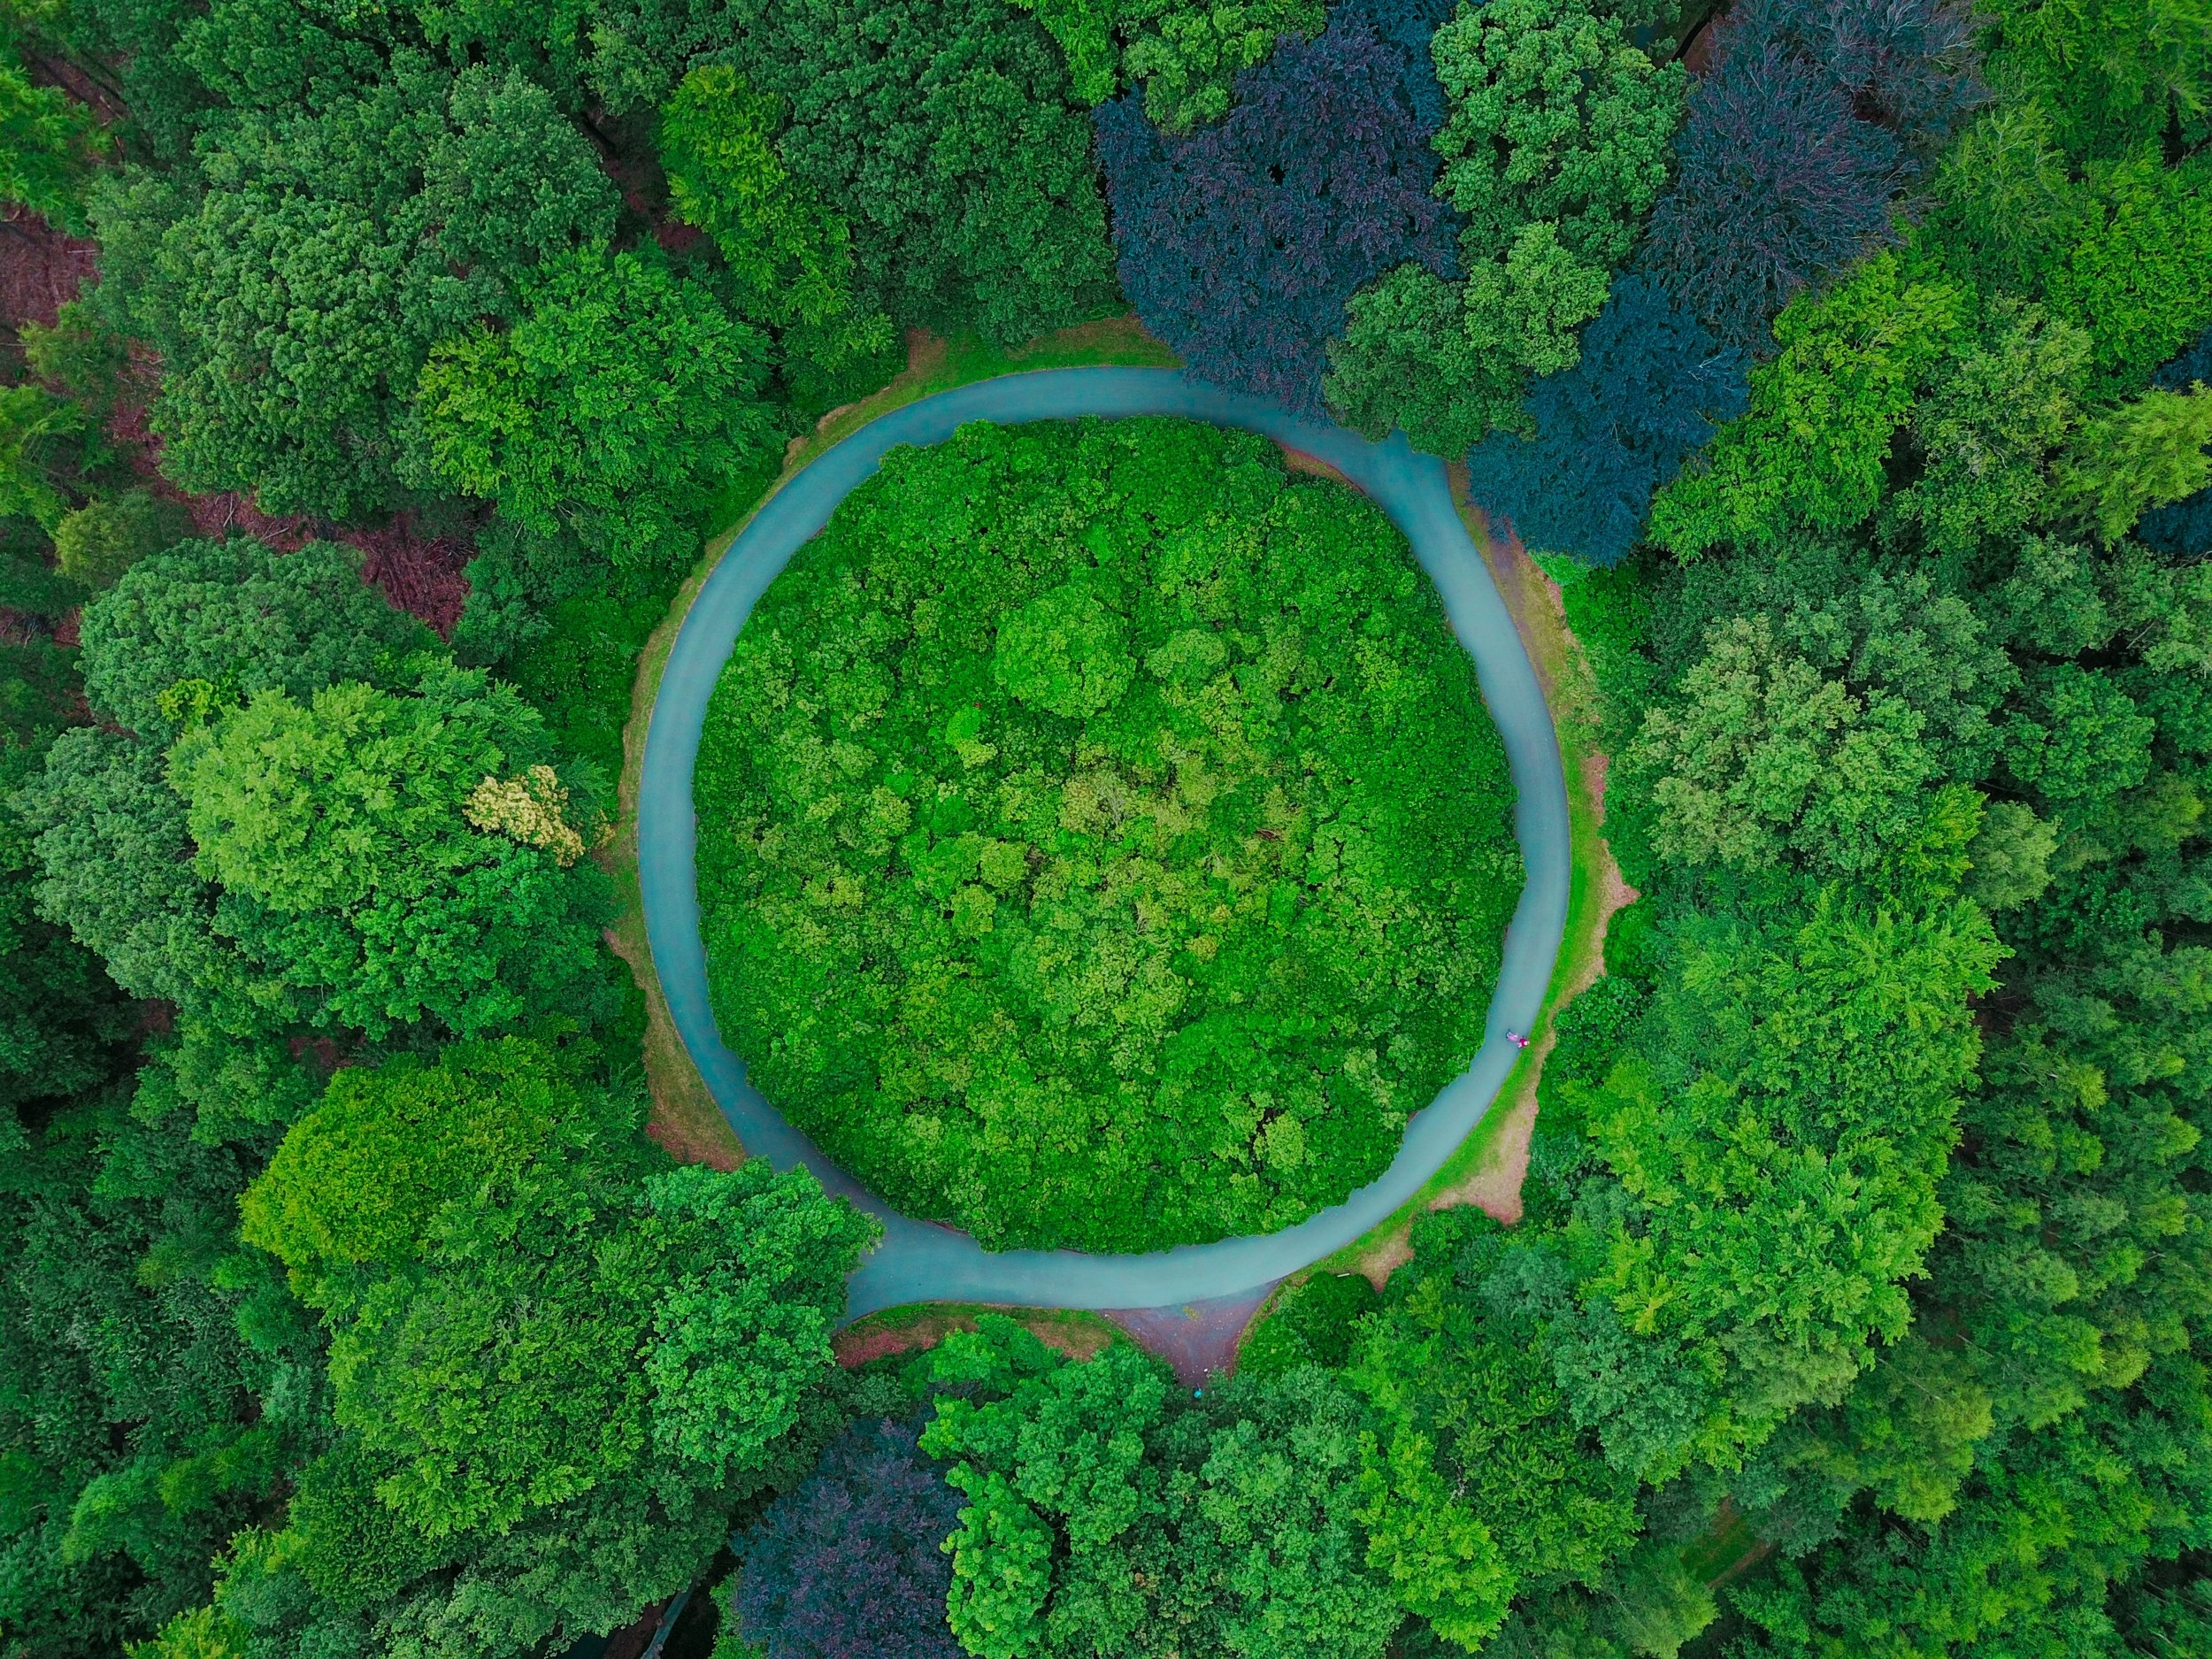 opportunity - Environmental commodity markets are are characterized by fragmented regulatory regimes and subject to frequent mispricings.